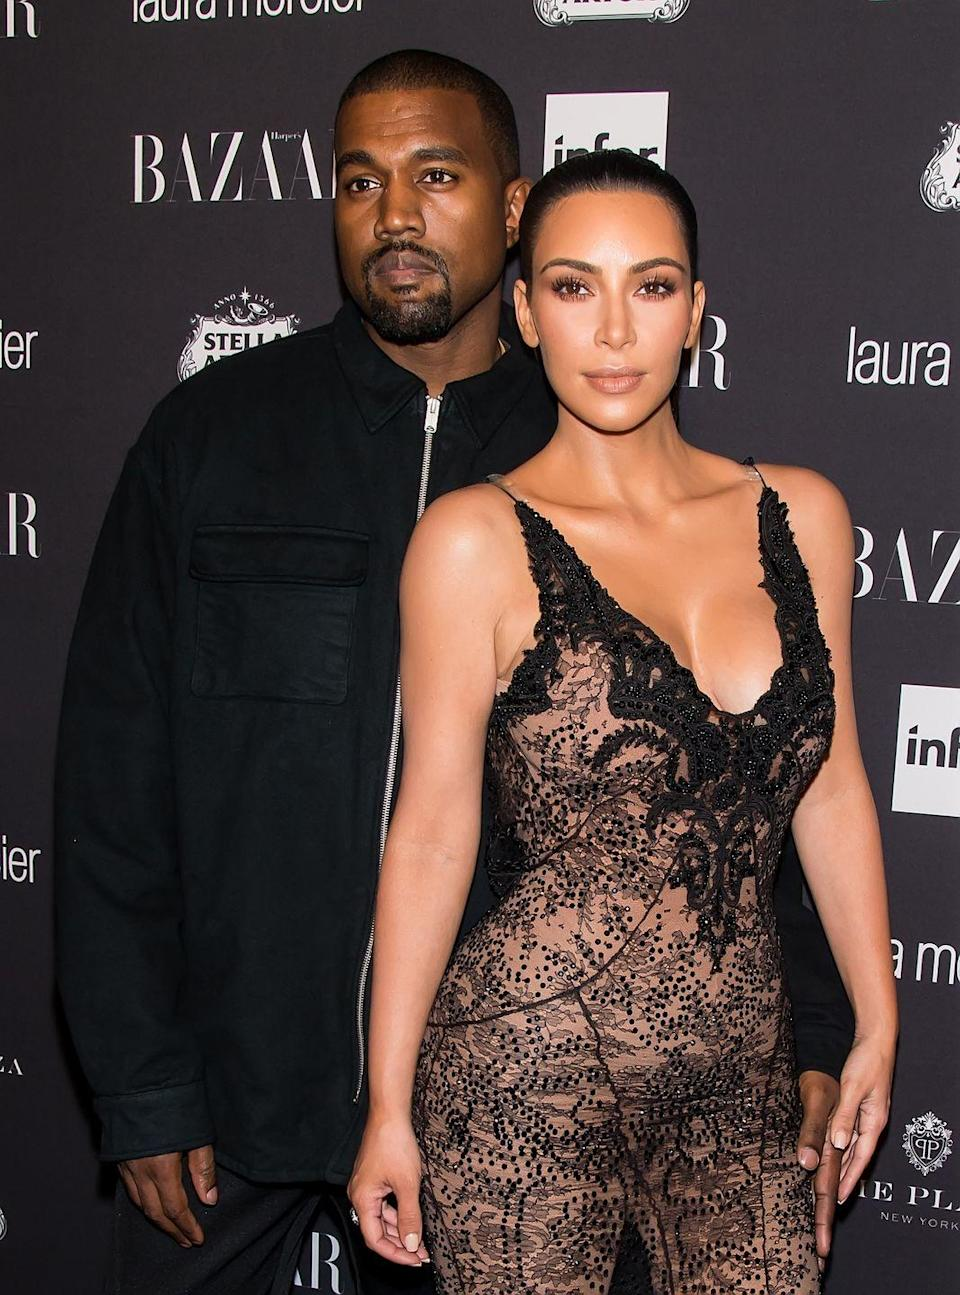 "<p>Never ones to go by the book (keep reading for even more from this uniquely-named brood!), Kim Kardashian West and Kanye West welcomed Psalm (Hebrew for ""song"") to the family in 2019. Born via surrogate, their son's name is <a href=""https://people.com/parents/kim-kardashian-kanye-west-son-psalm-name-meaning/"" rel=""nofollow noopener"" target=""_blank"" data-ylk=""slk:said to refer to"" class=""link rapid-noclick-resp"">said to refer to</a> ""where Kim and Kanye are spiritually."" </p>"